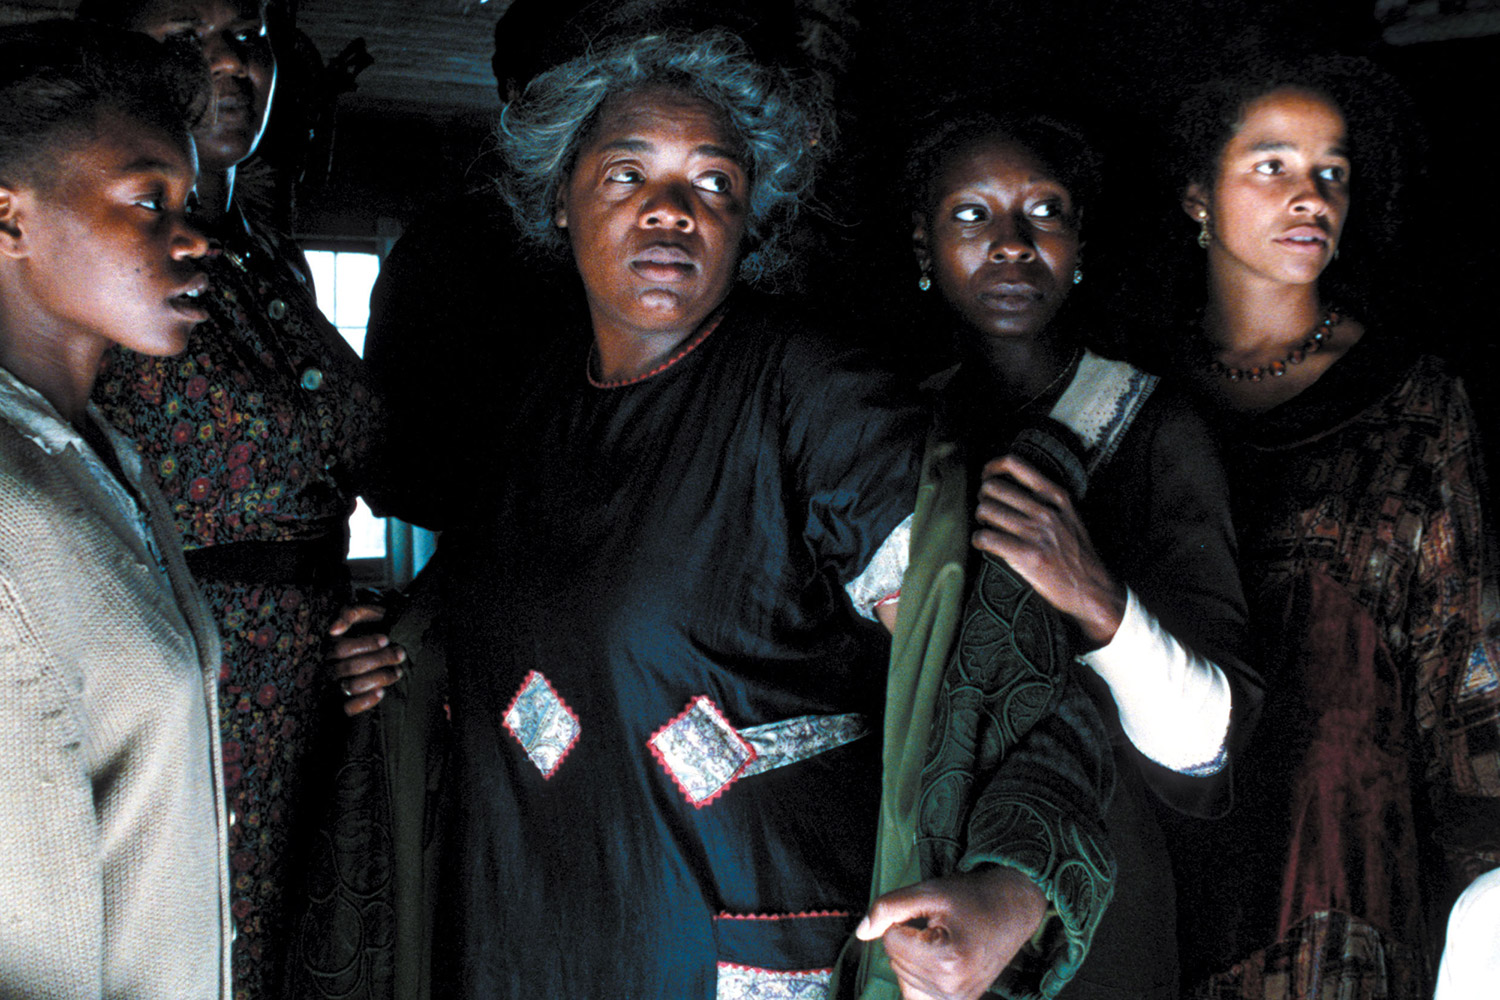 THE COLOR PURPLE, Oprah Winfrey, Whoopi Goldberg, Rae Dawn Chong, 1985, (c) Warner Brothers/courtesy